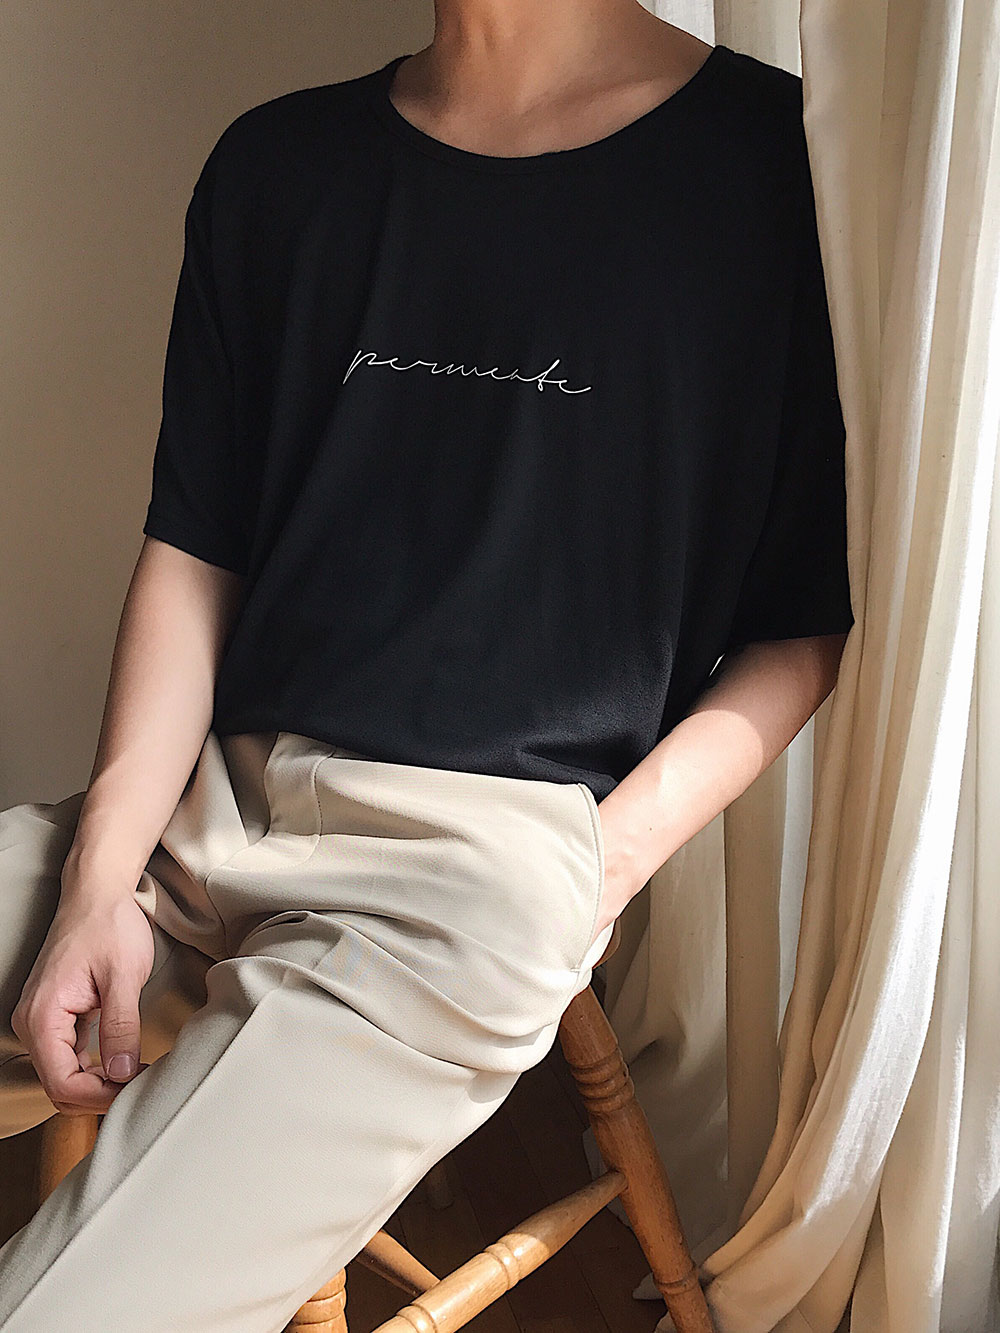 Permeate T-shirt (Black color)